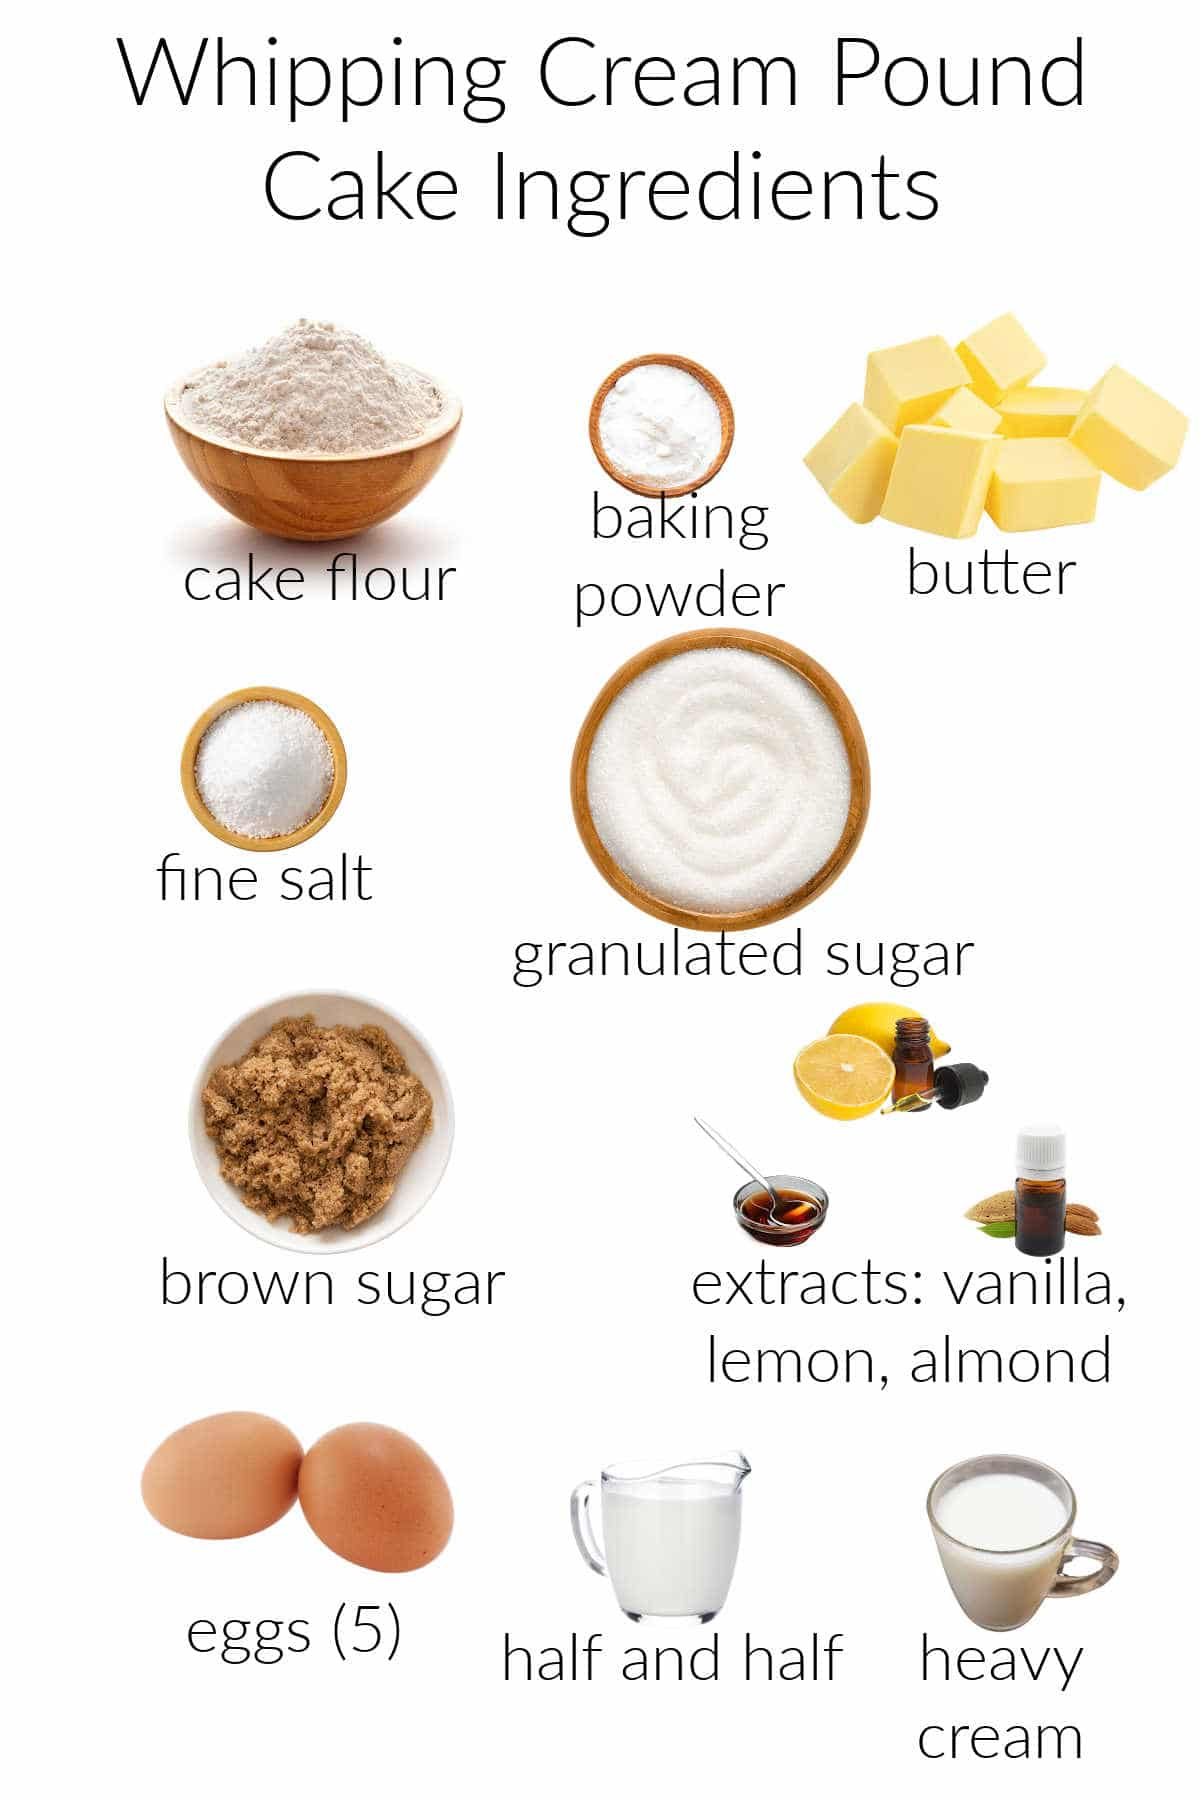 Collage of ingredients for making whipping cream pound cake.